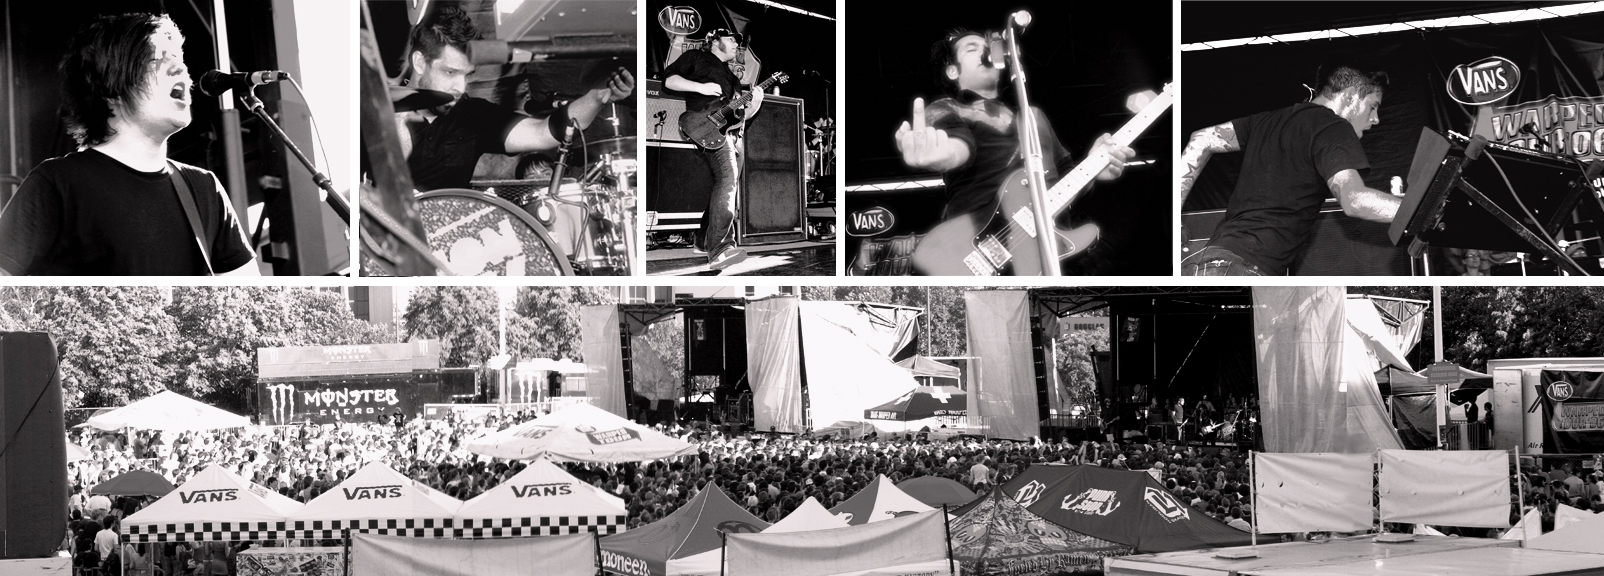 Motion City Soundtrack - Warped Tour